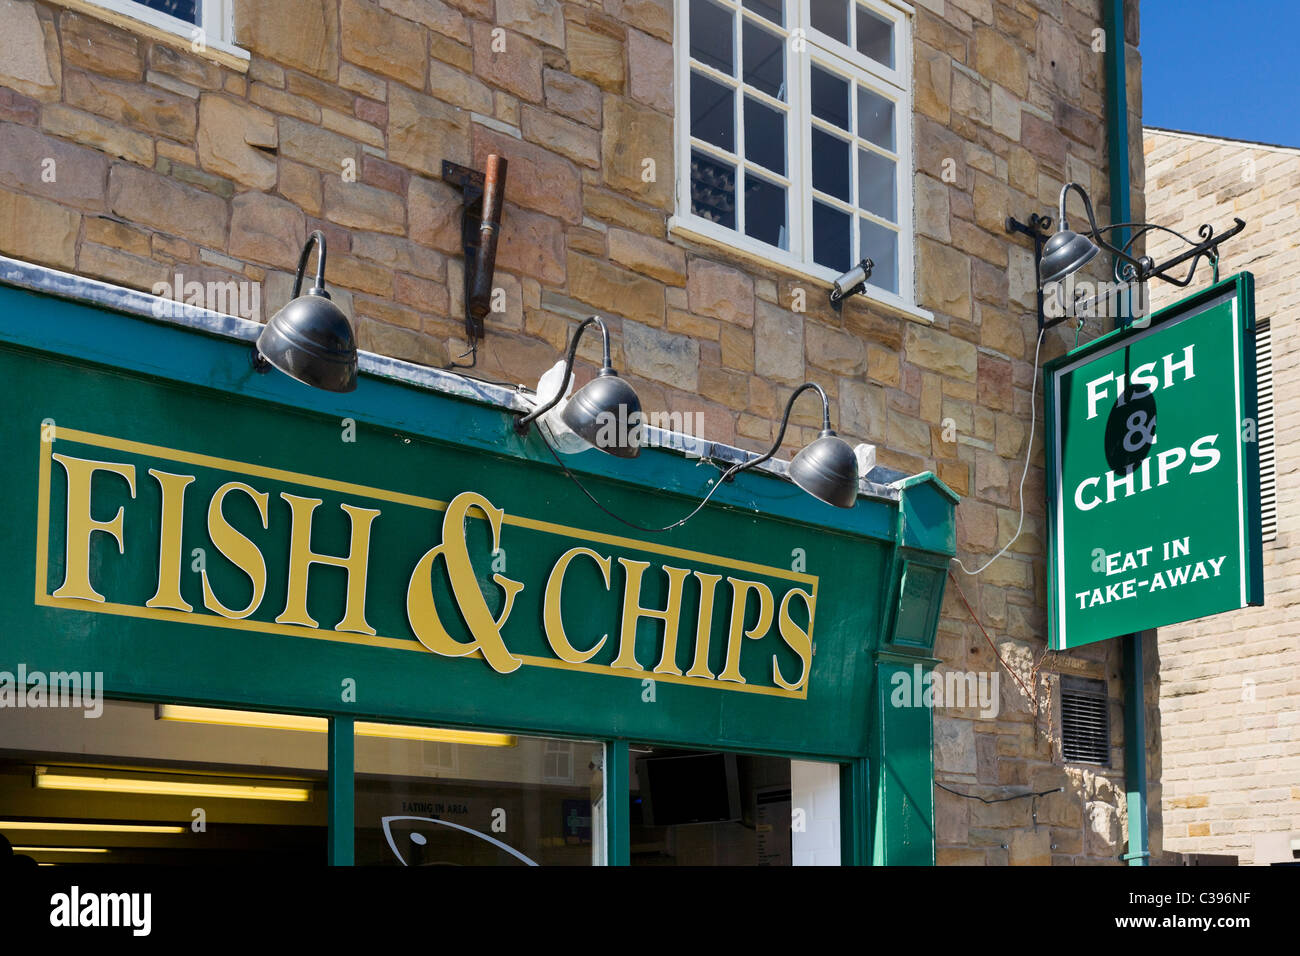 Los tradicionales Fish and Chip Shop, Bakewell, el Peak District, Derbyshire, Reino Unido Imagen De Stock